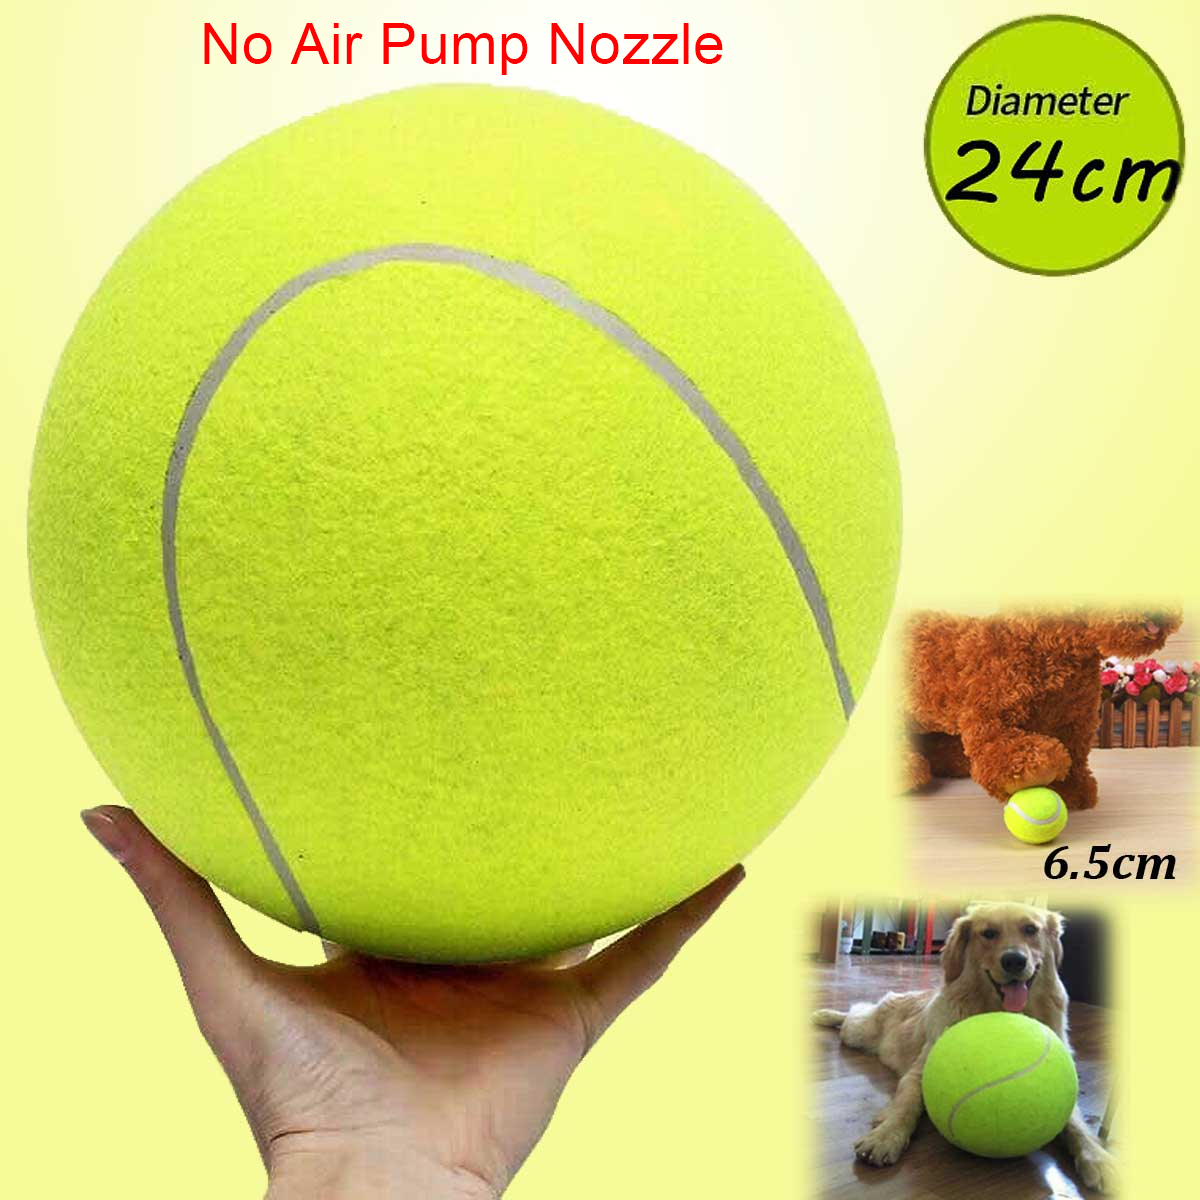 Diameter 9 5 Inch Rubber Kelly Tennis Ball Giant Pet Toy Dog Puppy